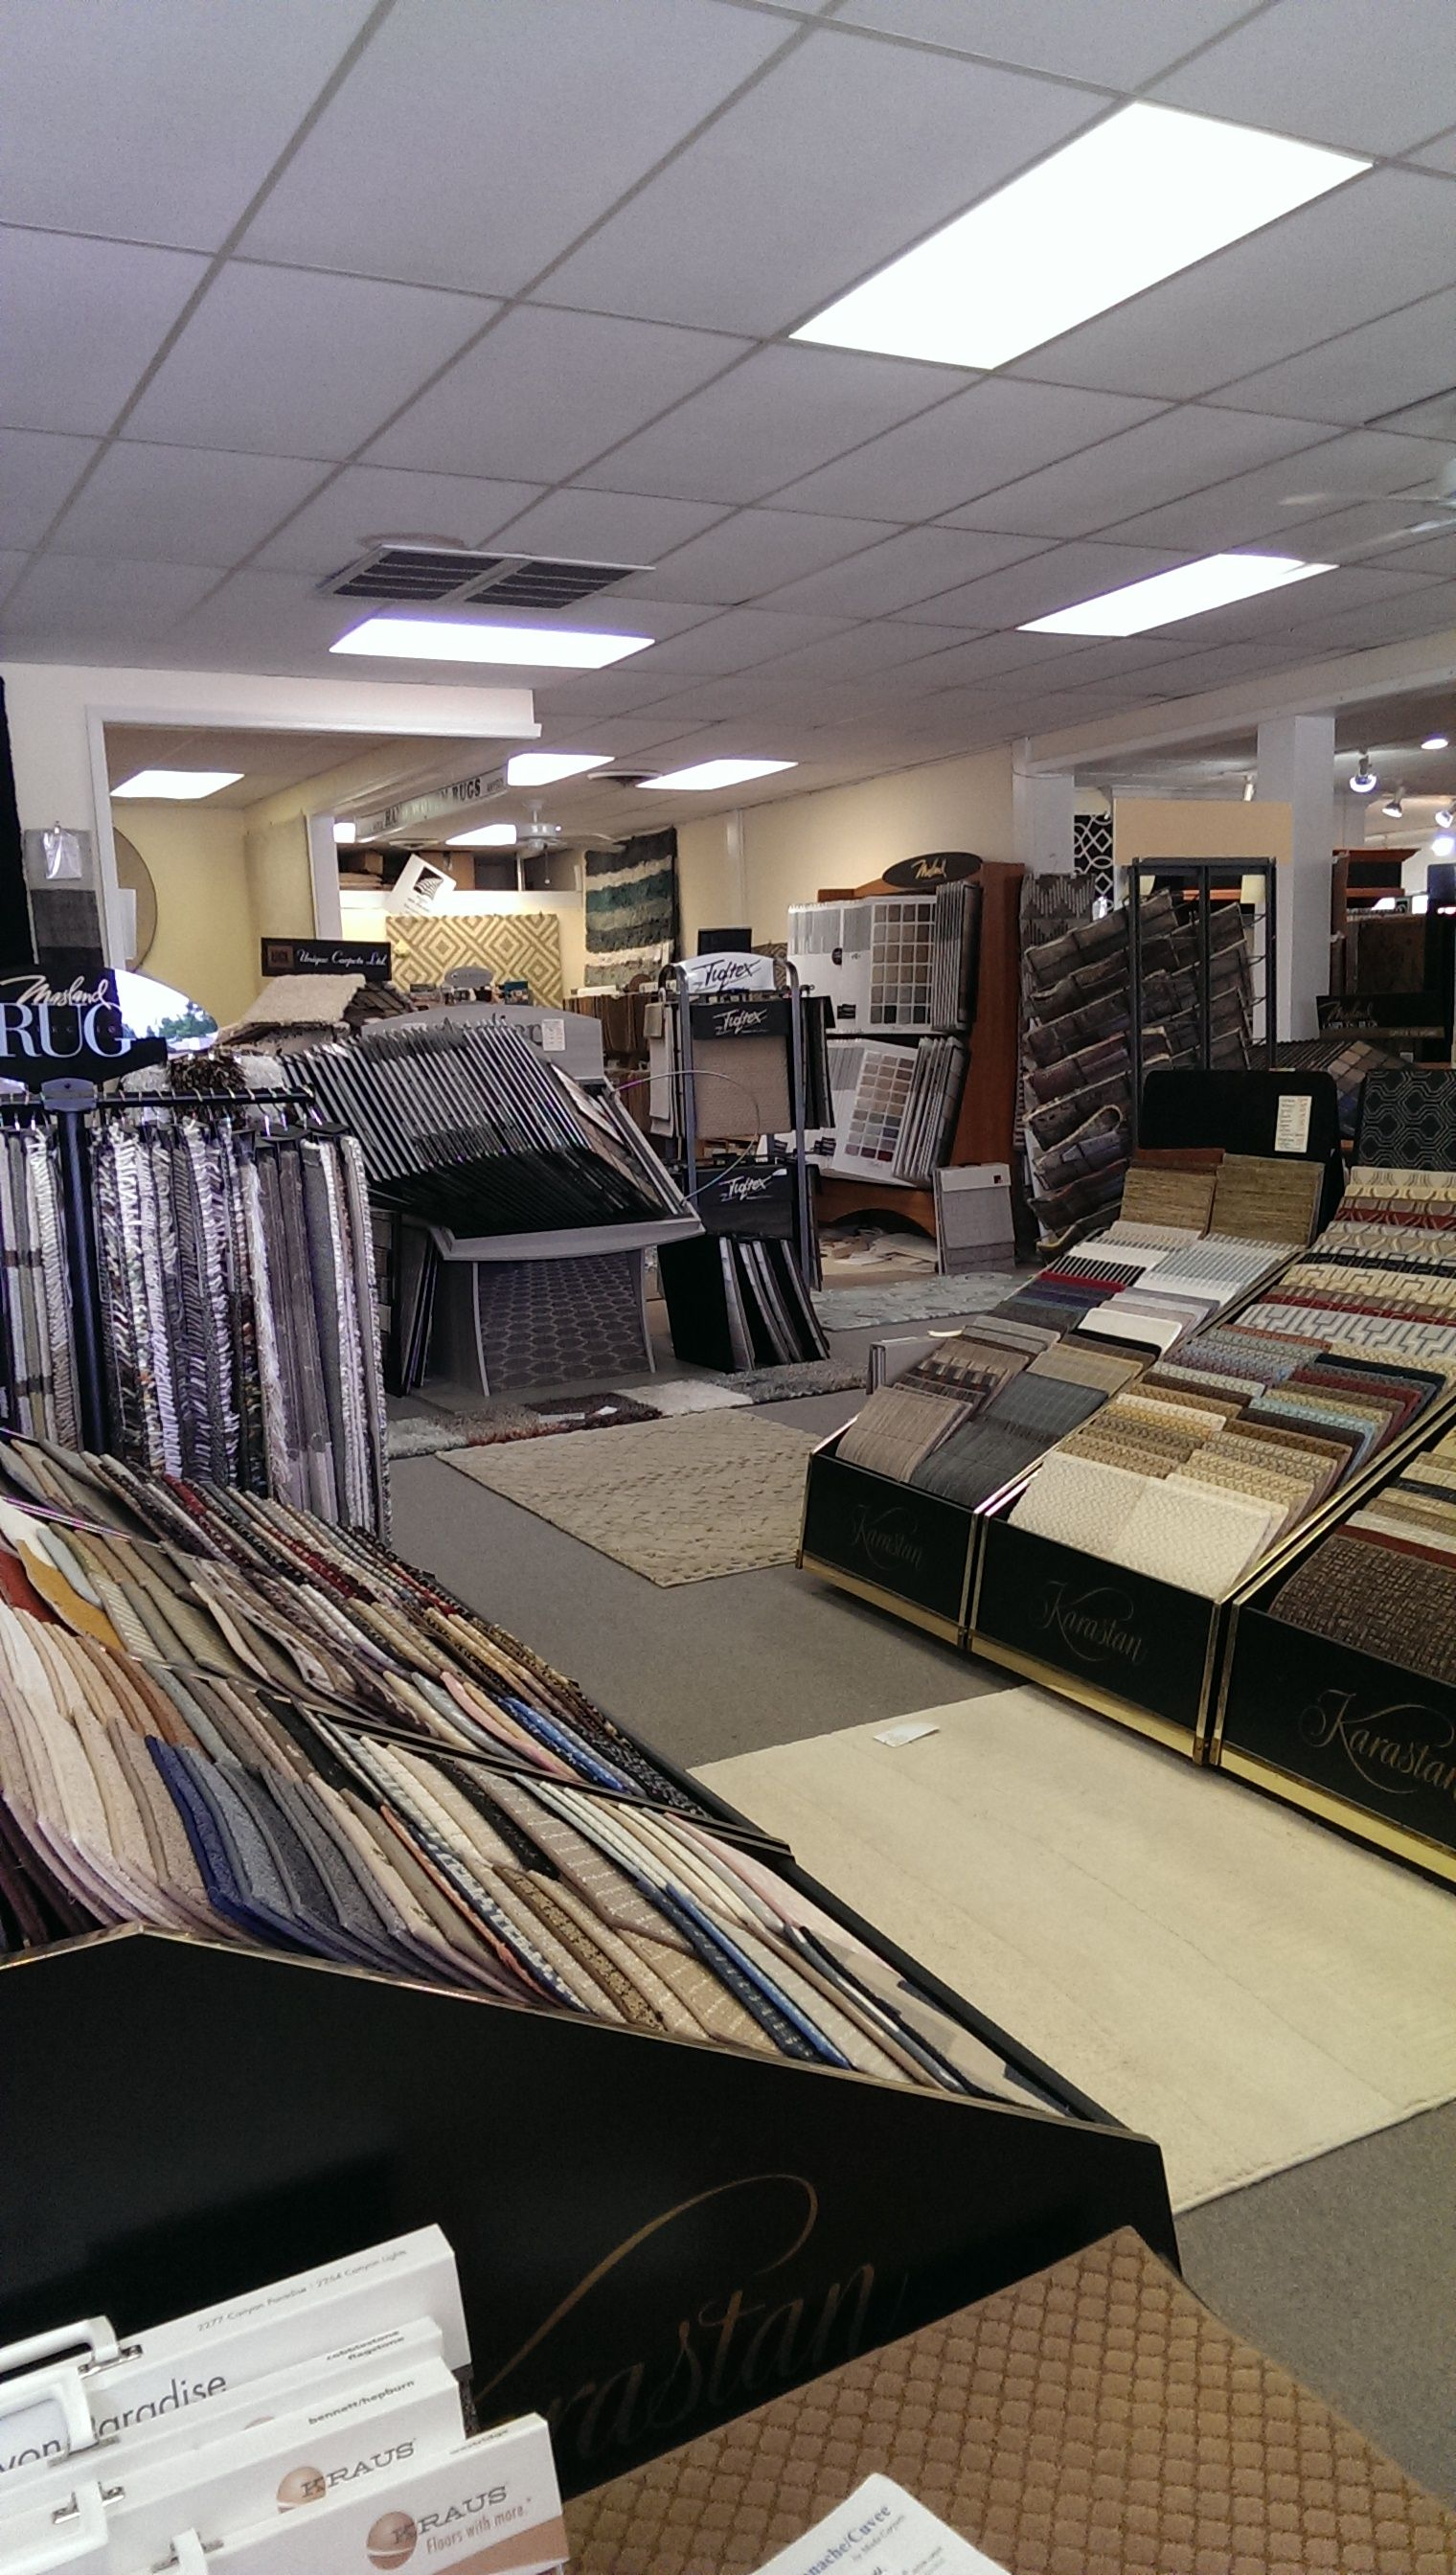 Patterned And Printed Carpet Made From Stainresistant Nylon - Budget floor store okc